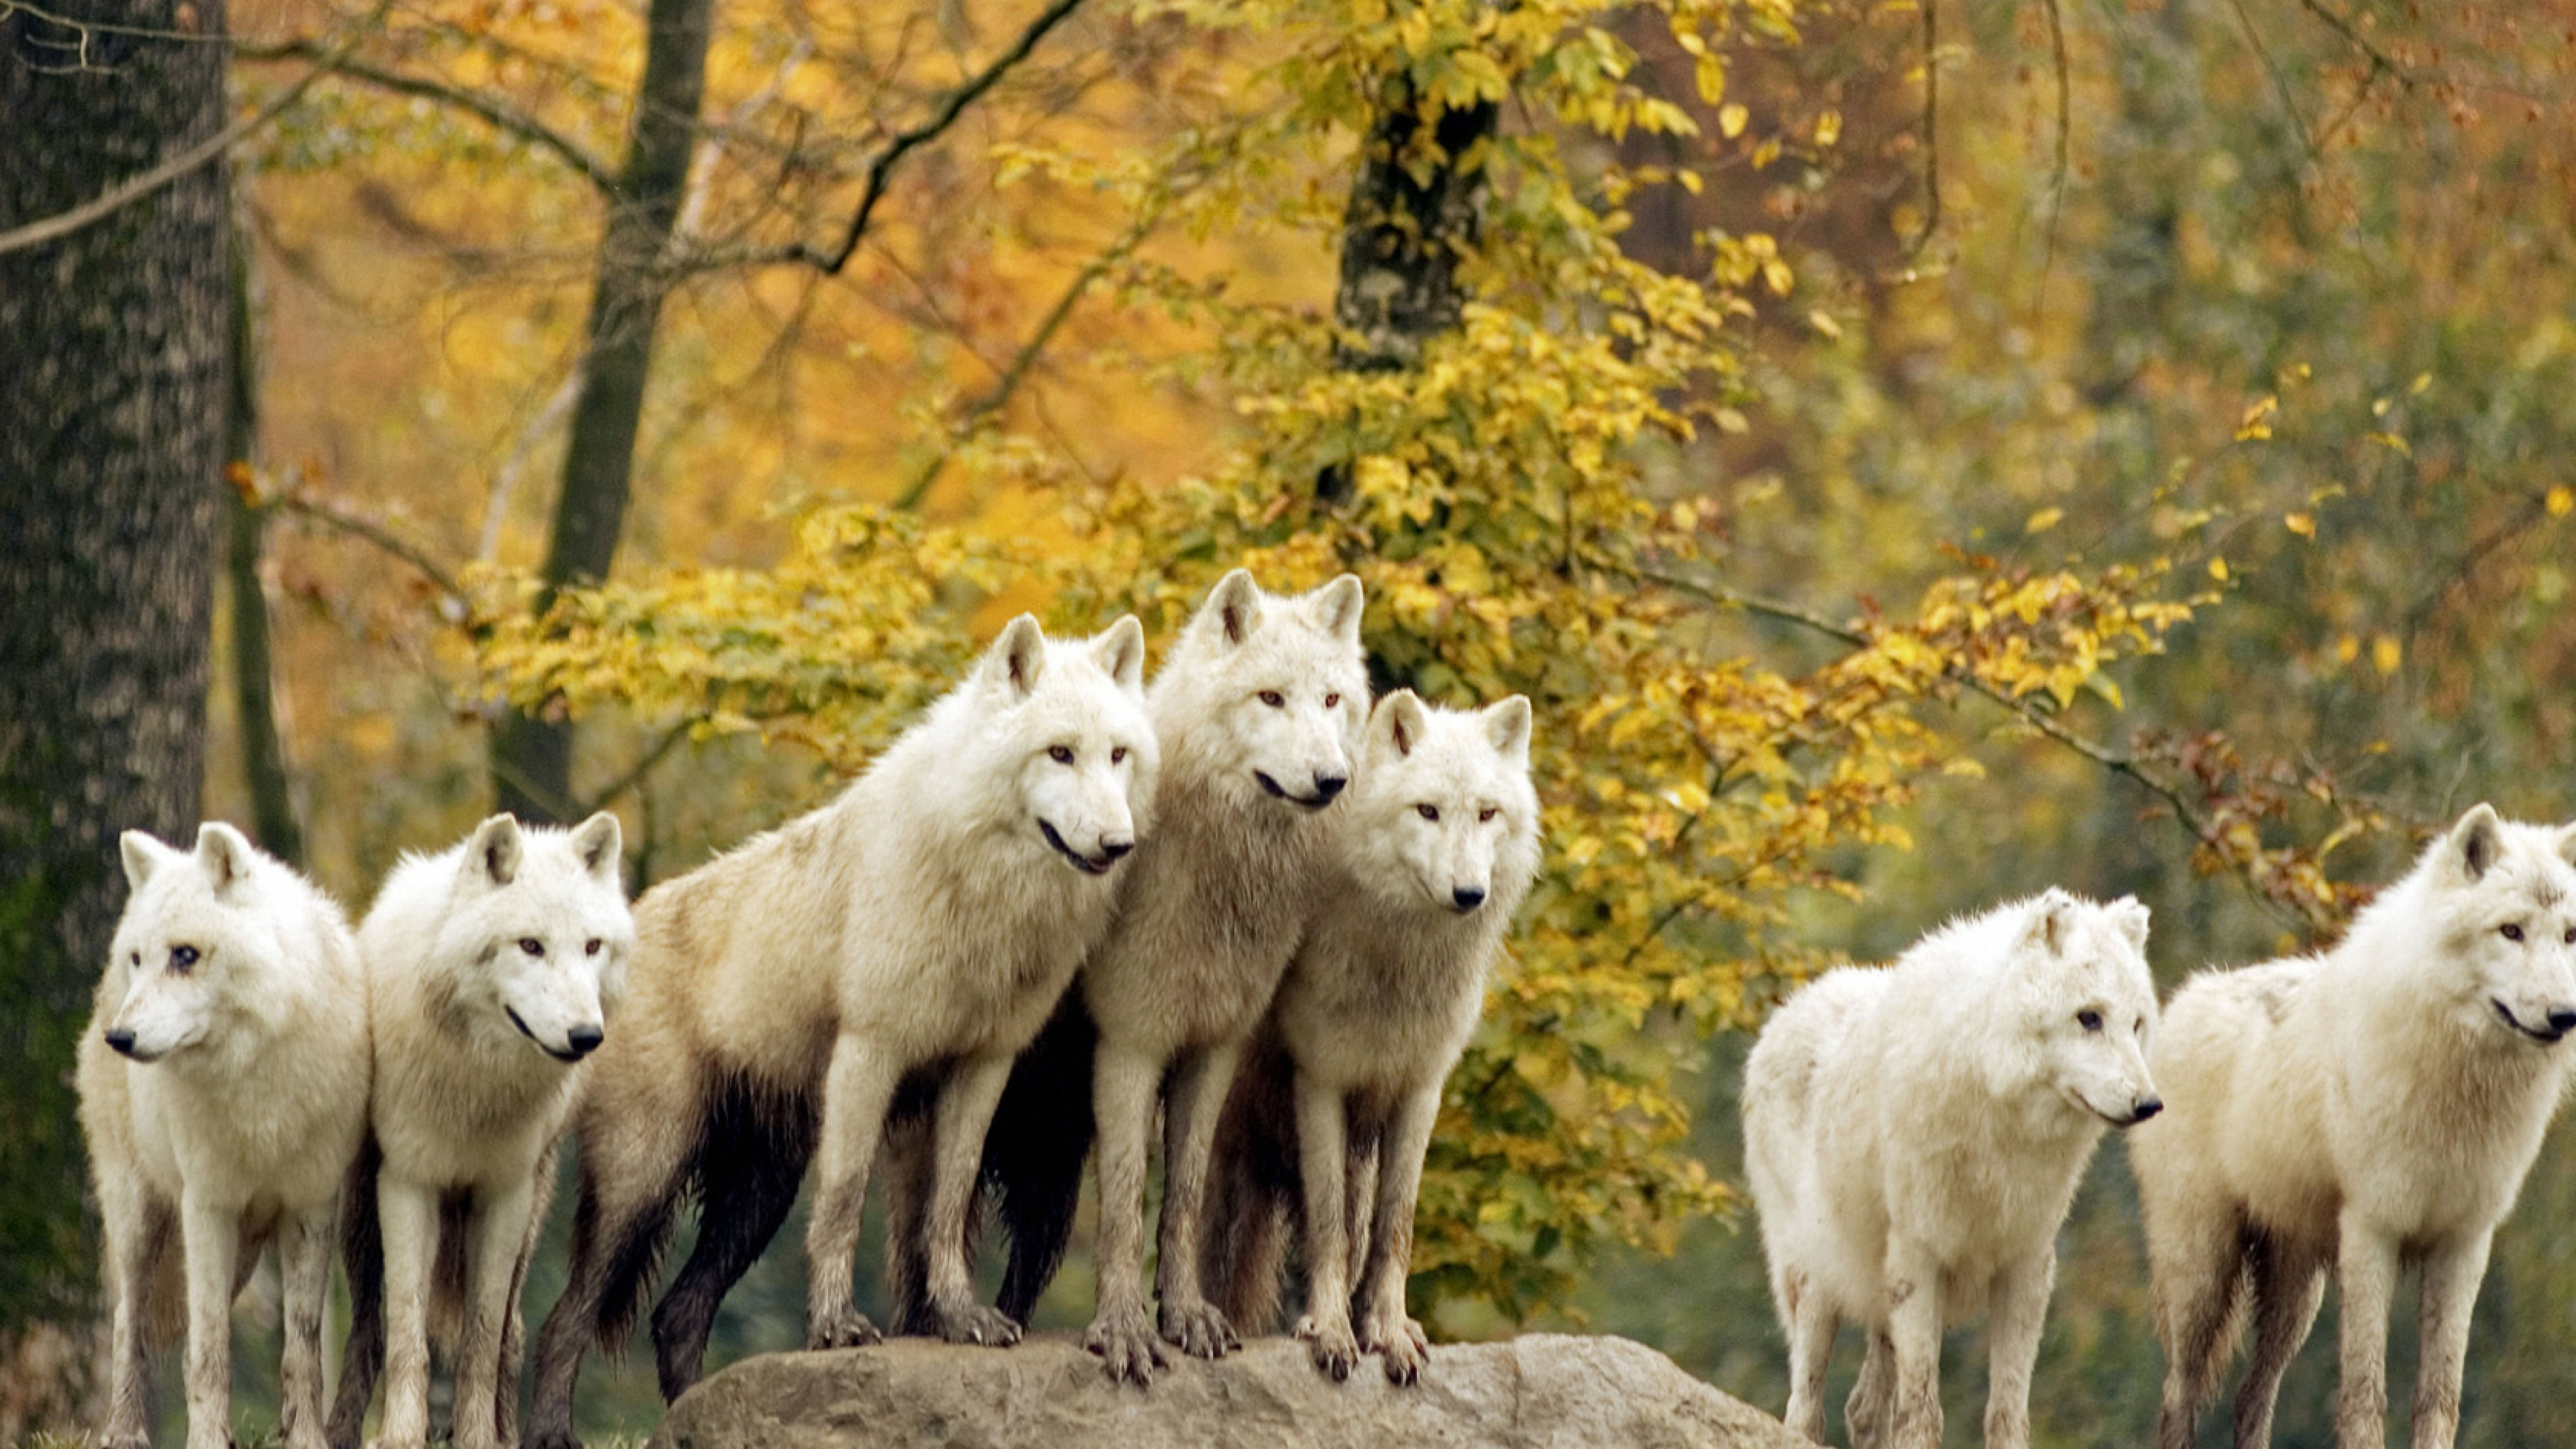 Wolves Forest Flock Grass Trees Autumn Hunting Family Wallpaper 3840x2160